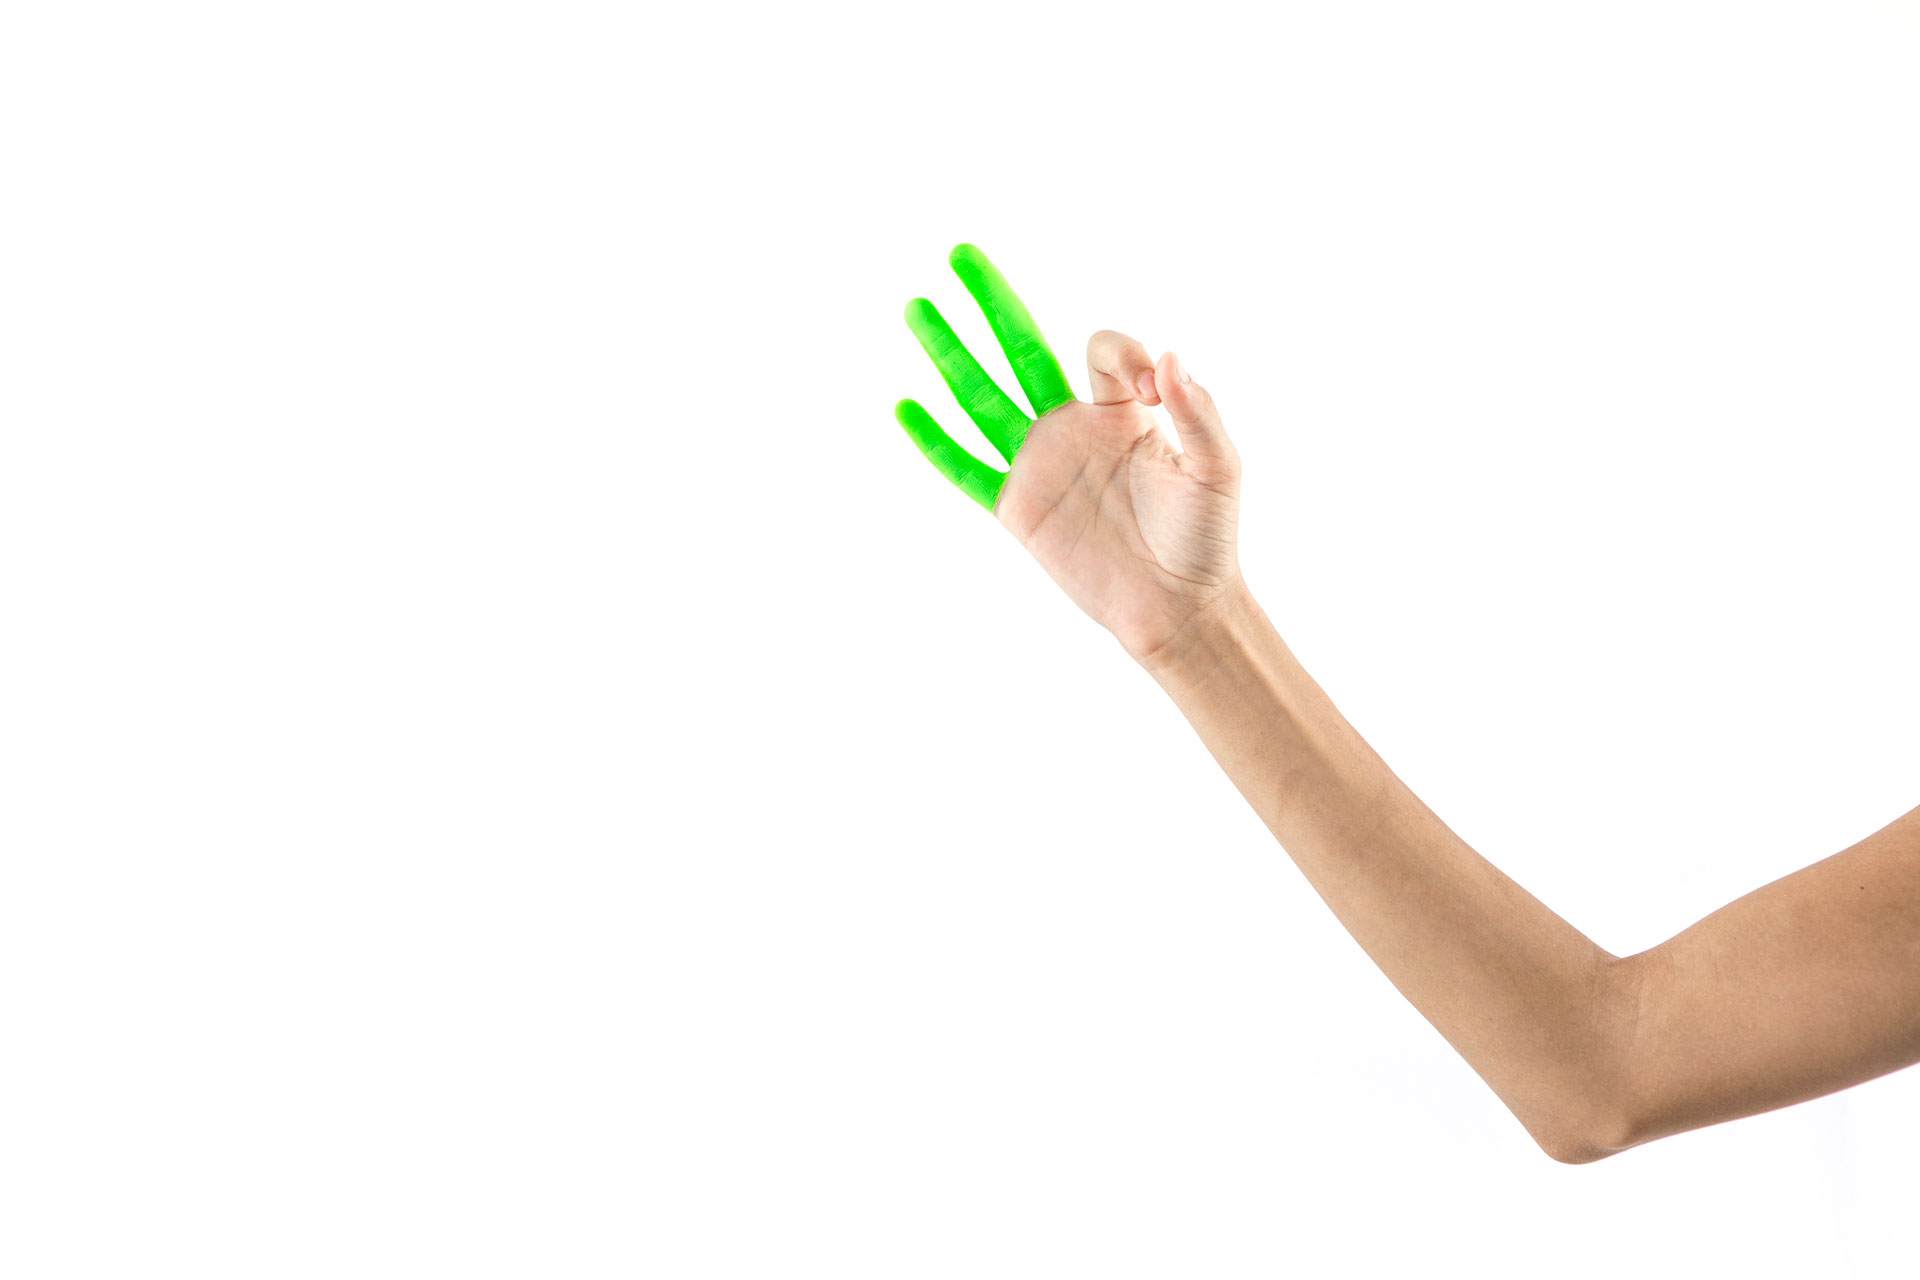 Must have leverage.  Middle, ring & pinky fingers up, while index and thumb form circle.